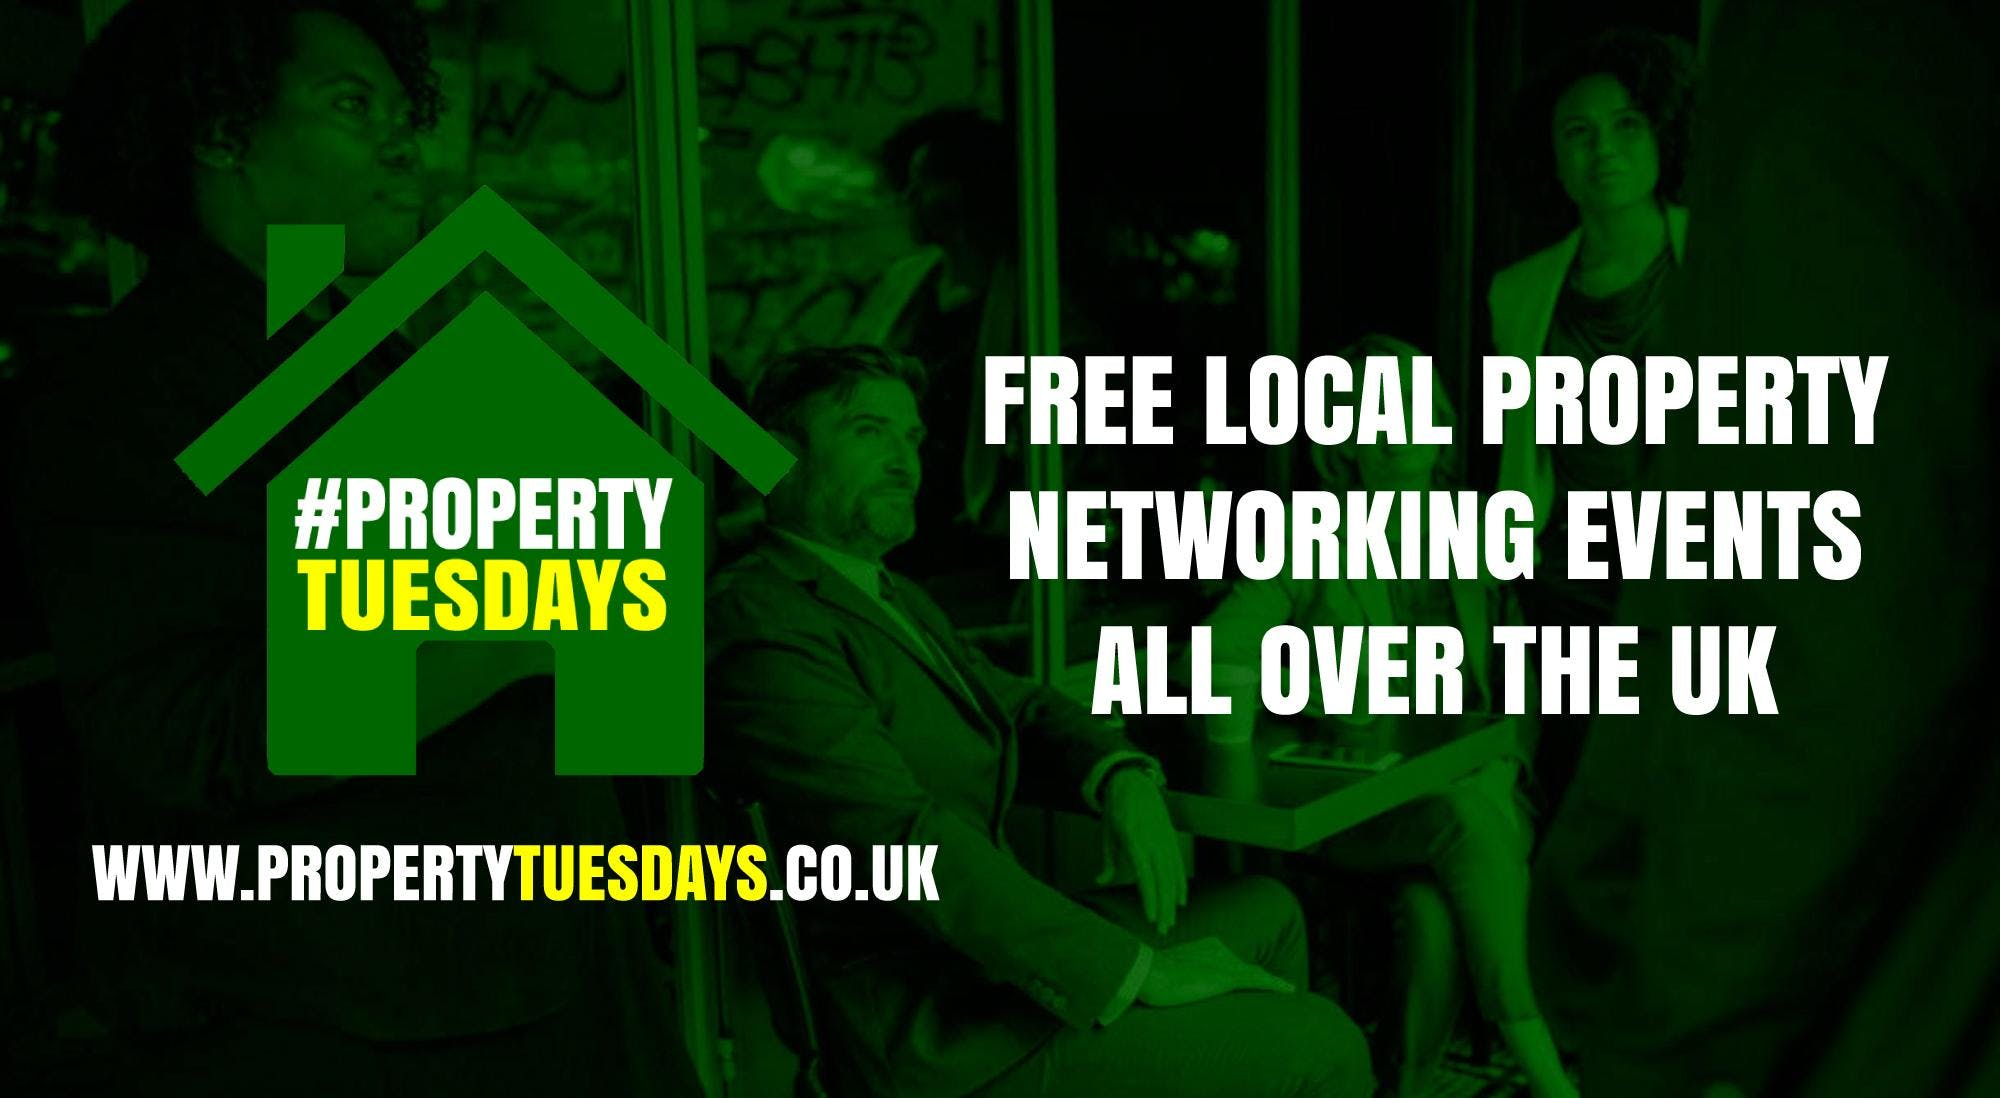 Property Tuesdays! Free property networking event in West Bromwich